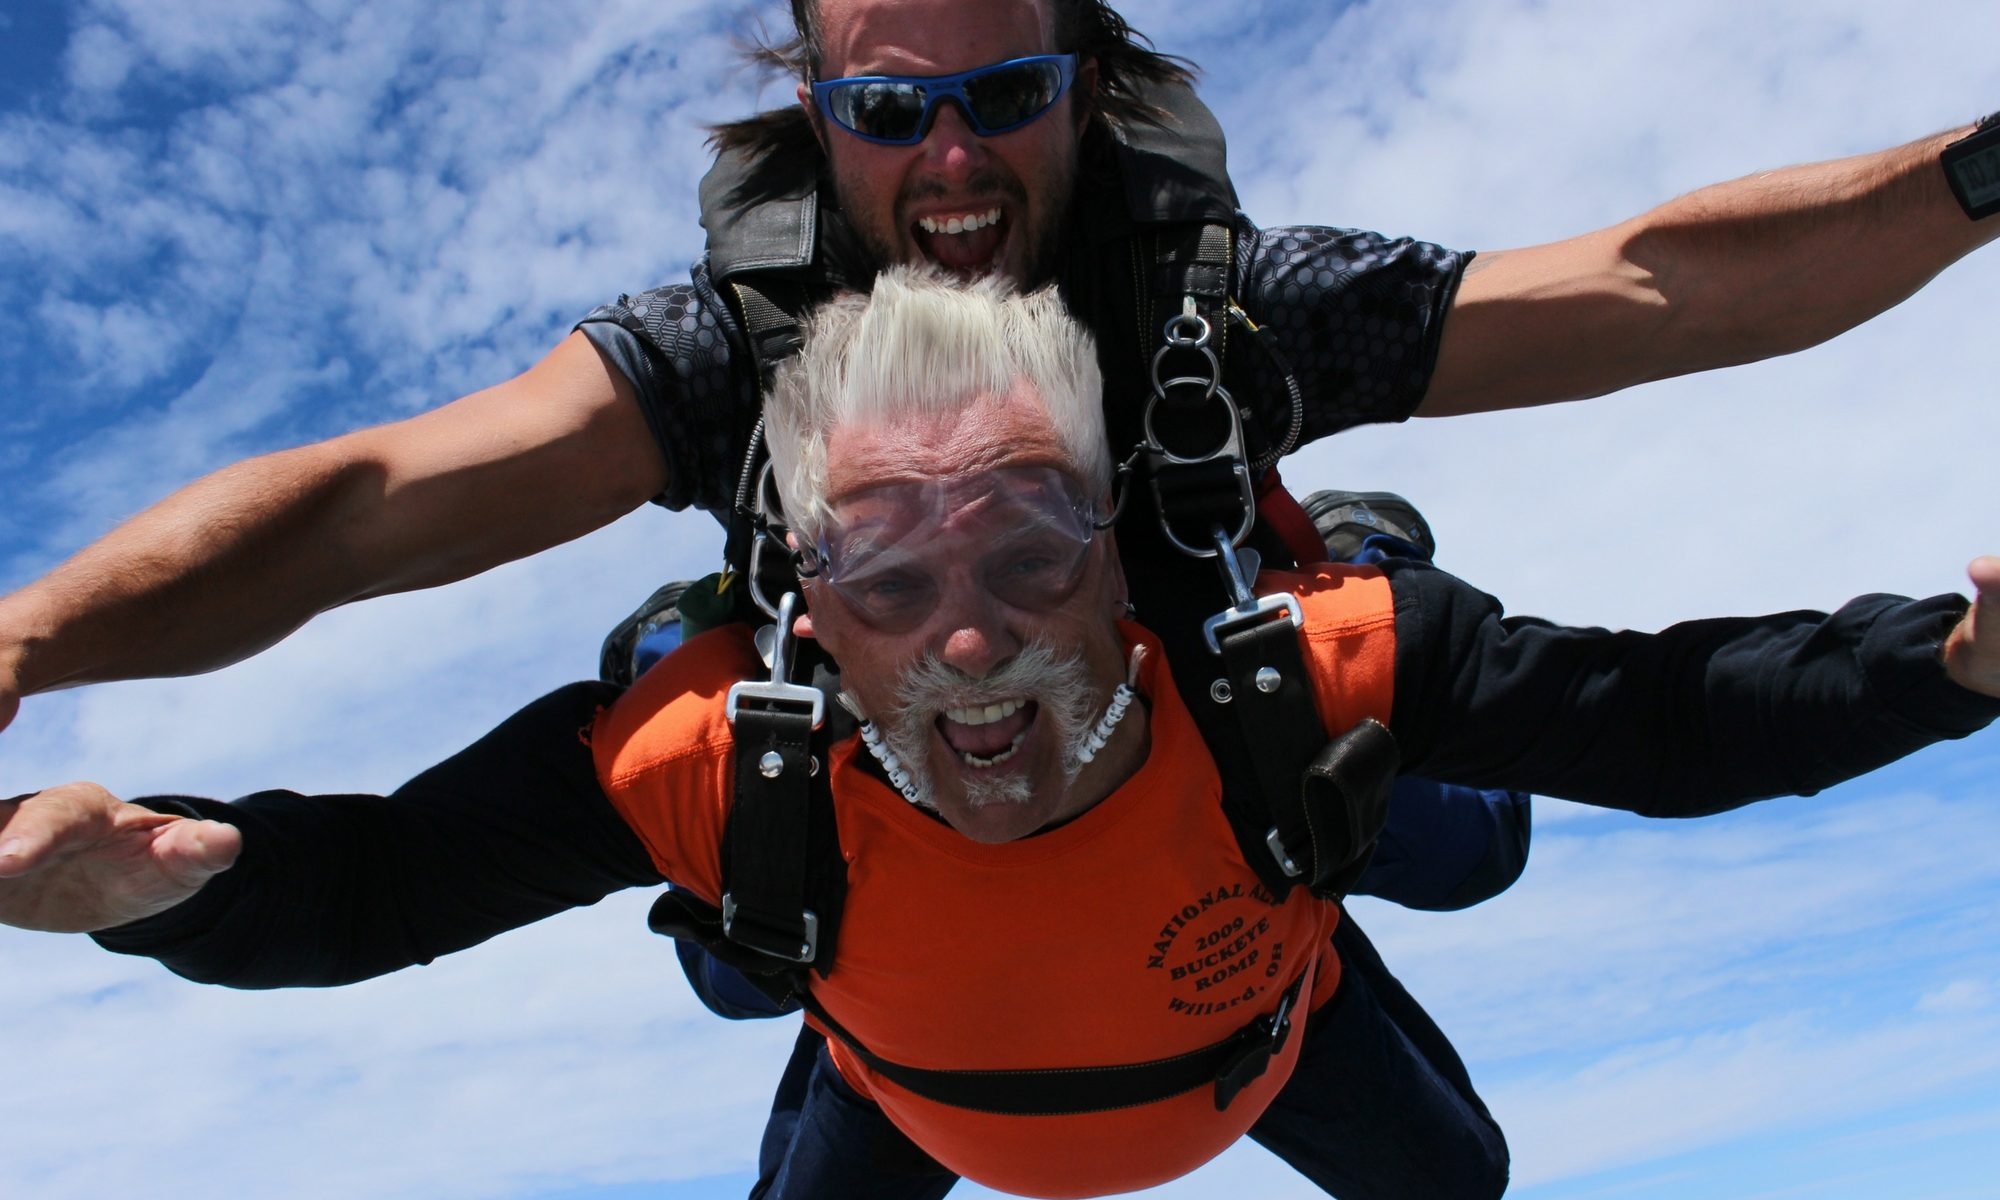 Does Your First Skydive Have to be a Tandem? | Skydive Techumseh